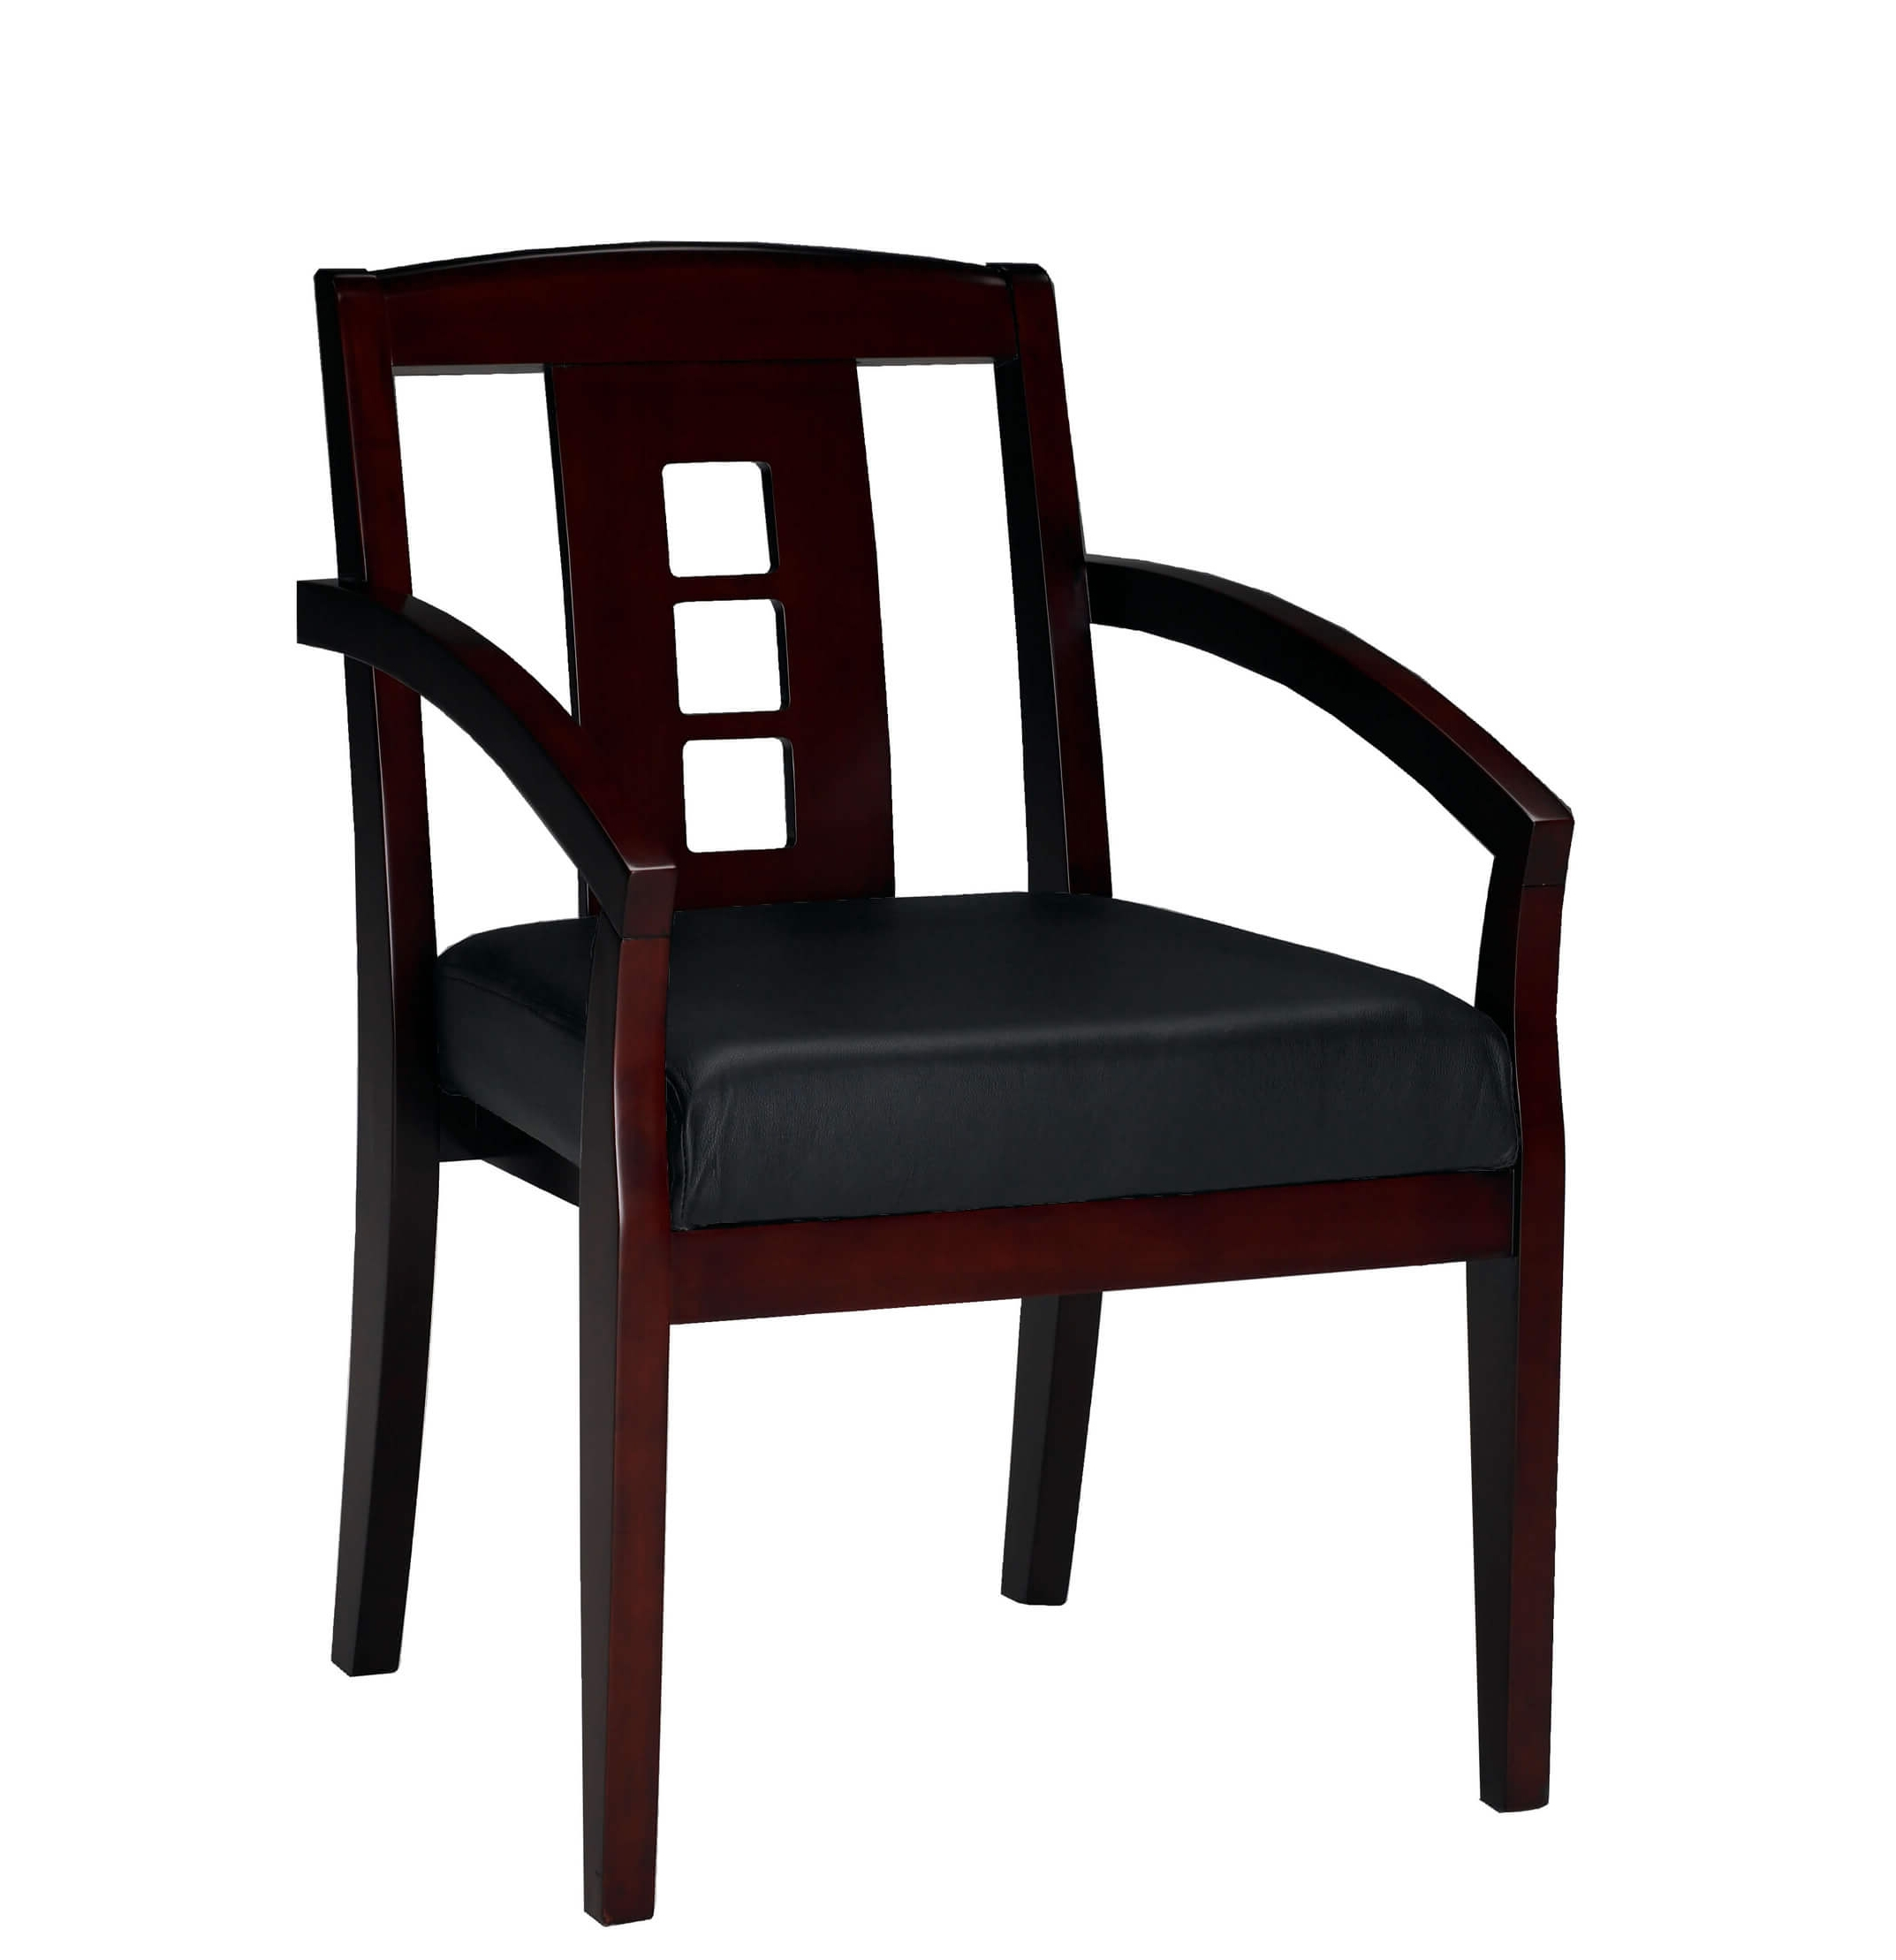 Side chairs with arms CUB VSC2ABMAH YAM